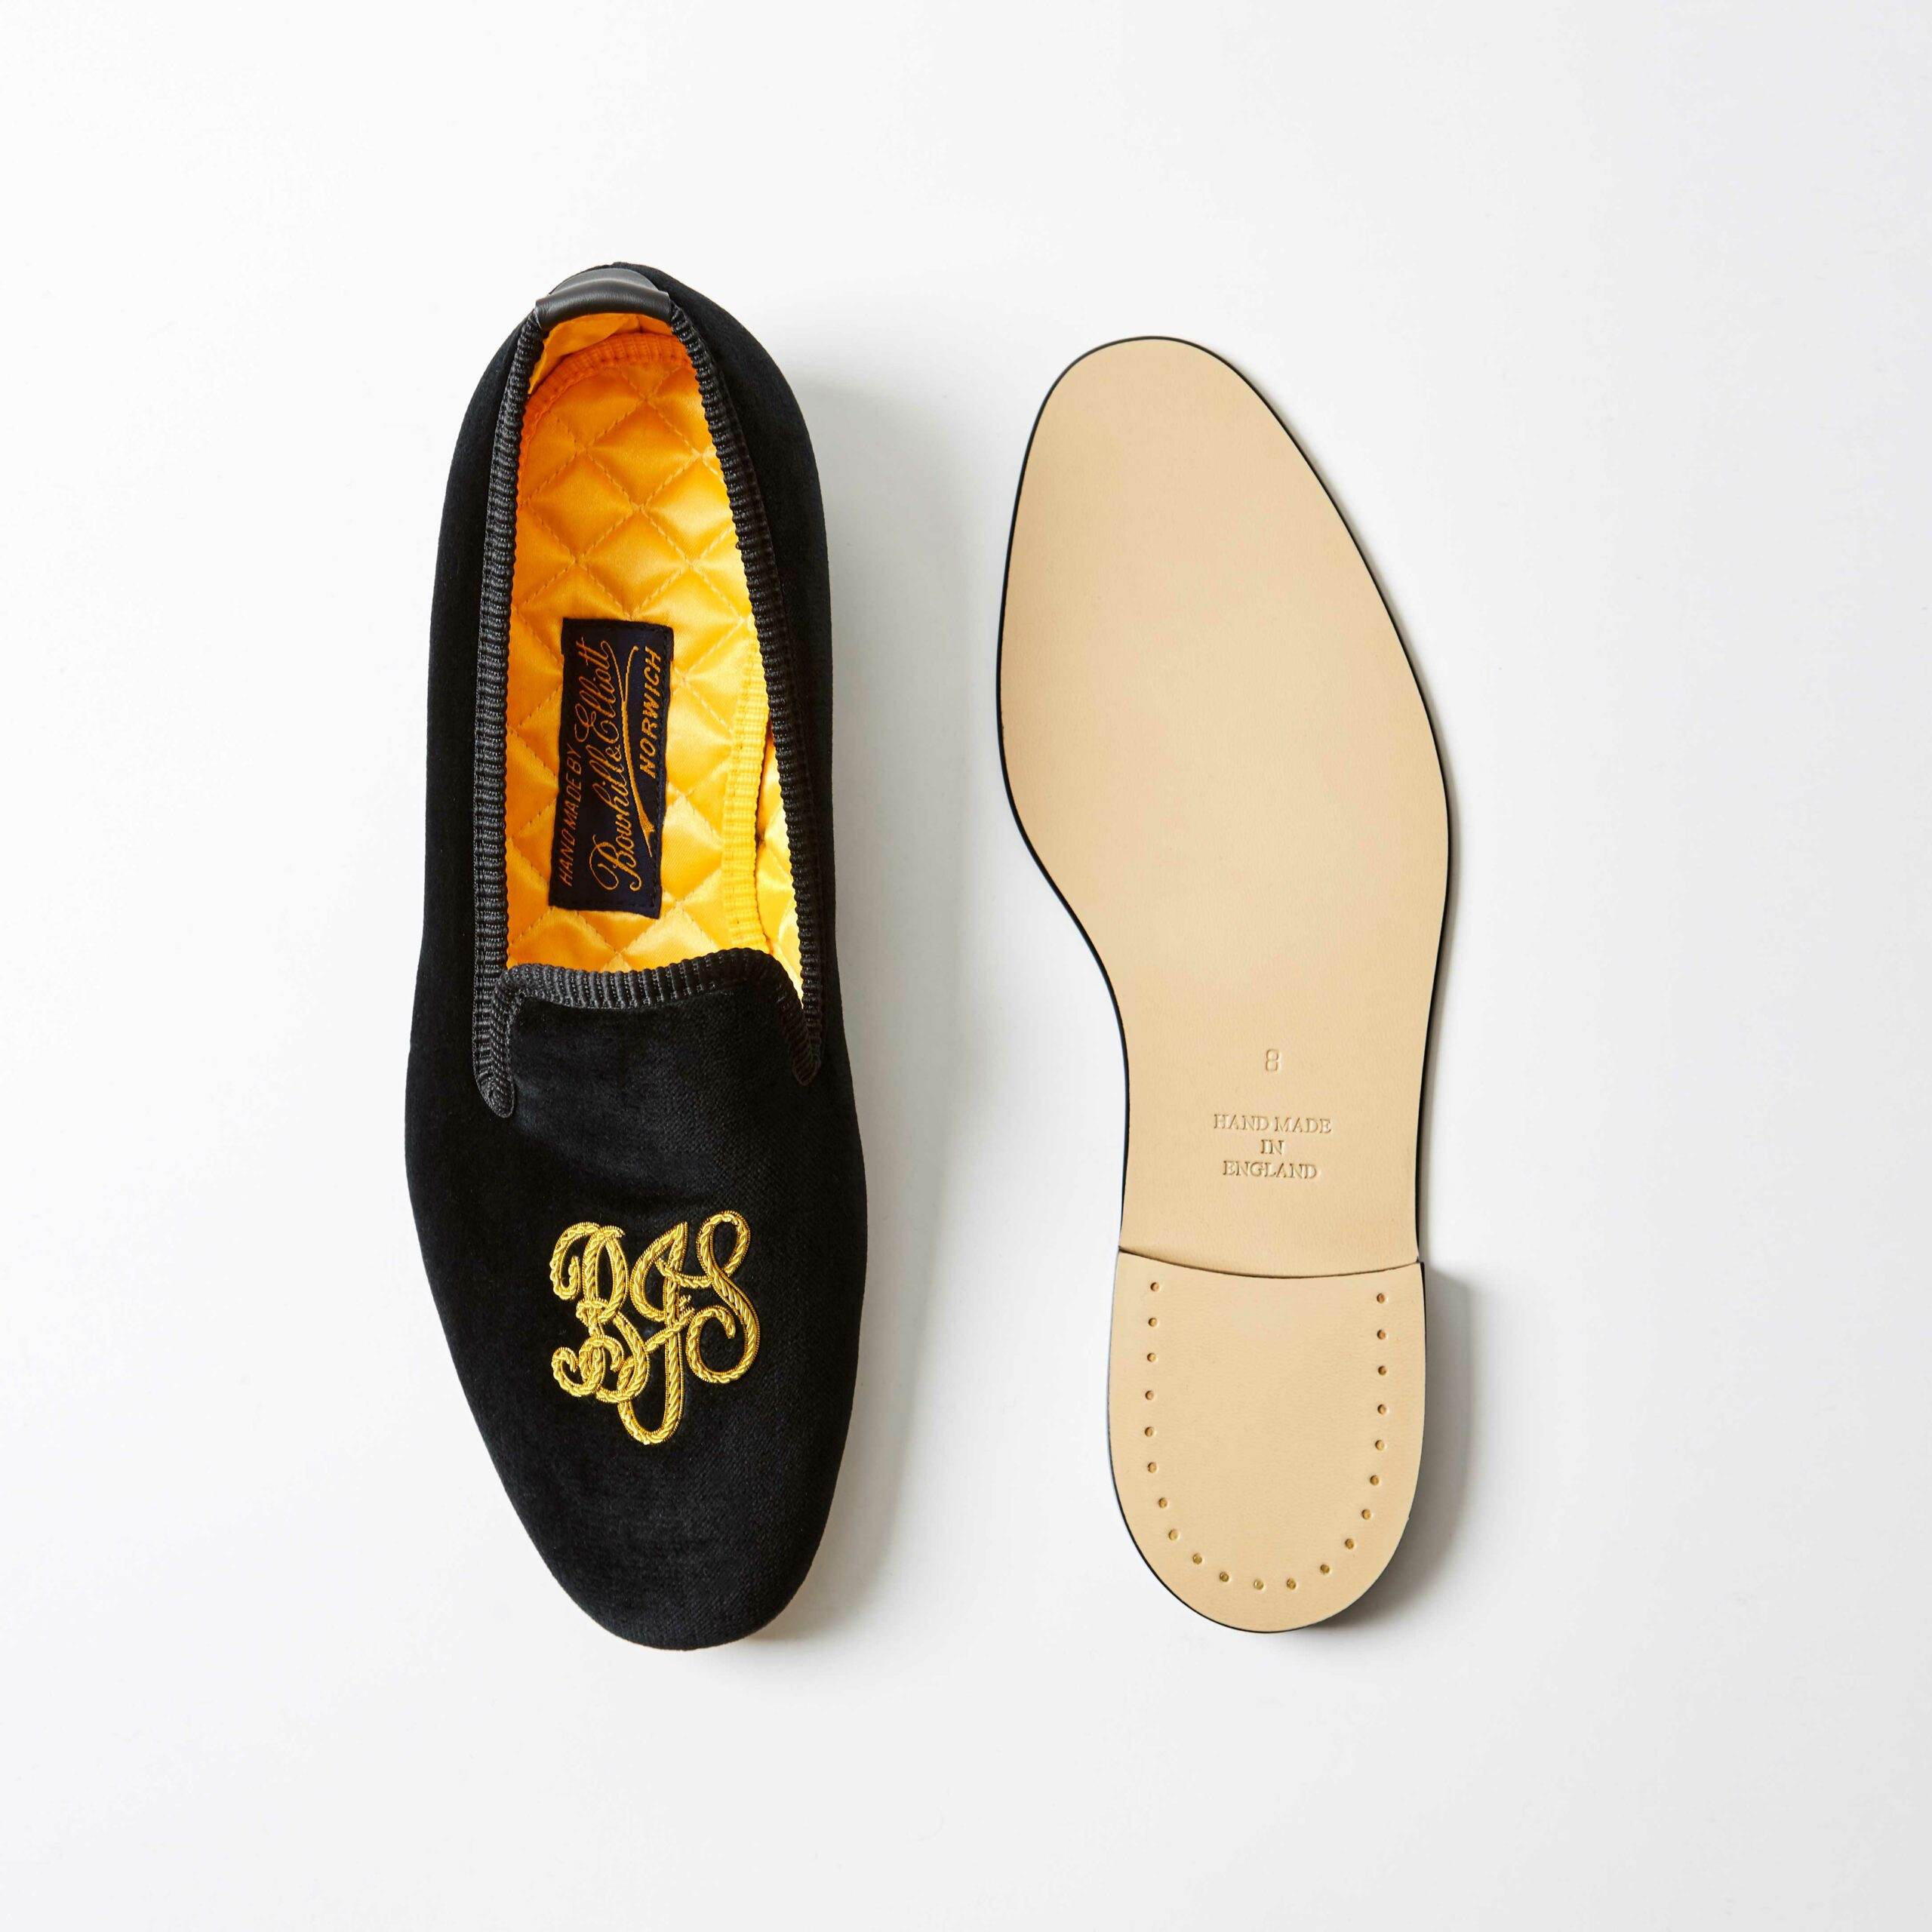 Personalised Embroidered Slippers 2